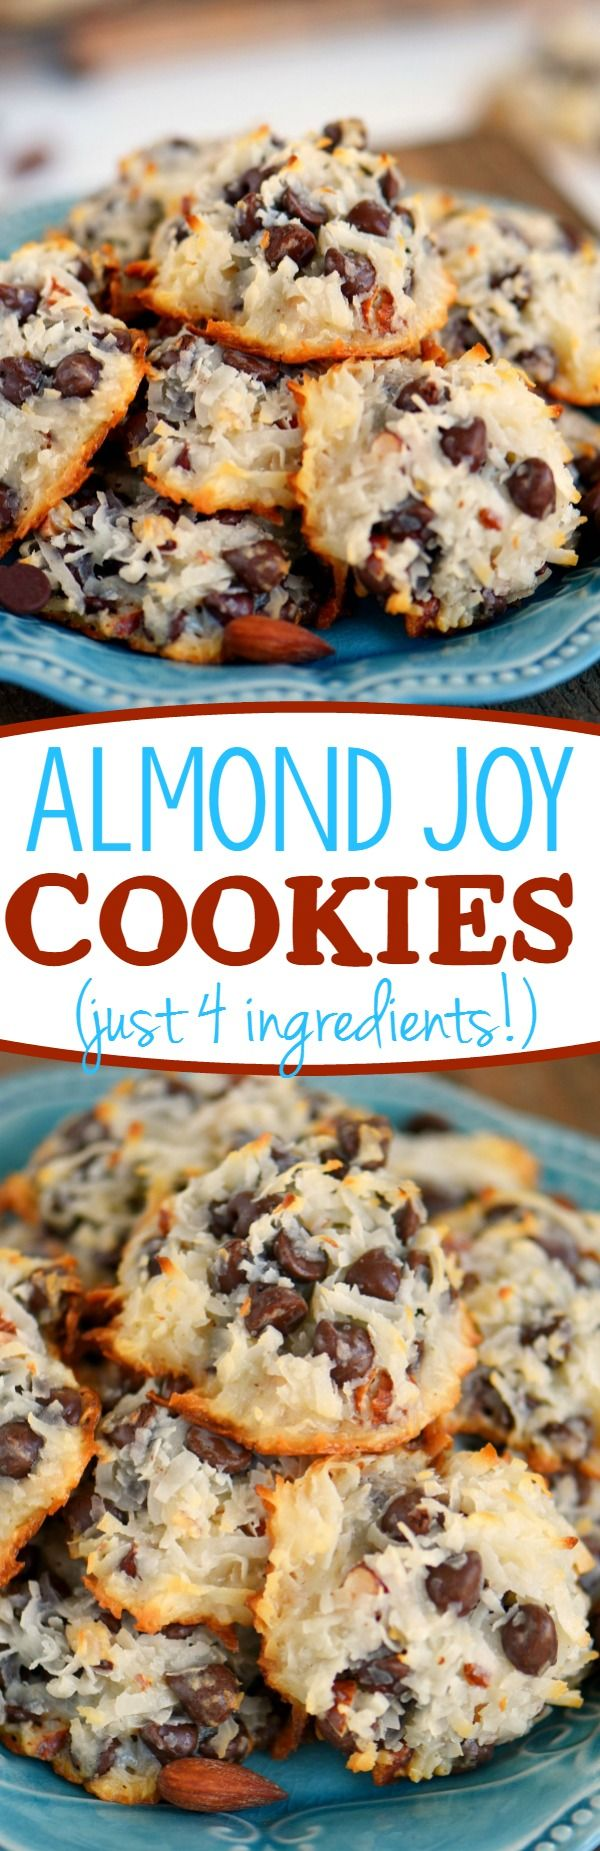 These Easy Almond Joy Cookies Take Just Four Ingredients And Don T